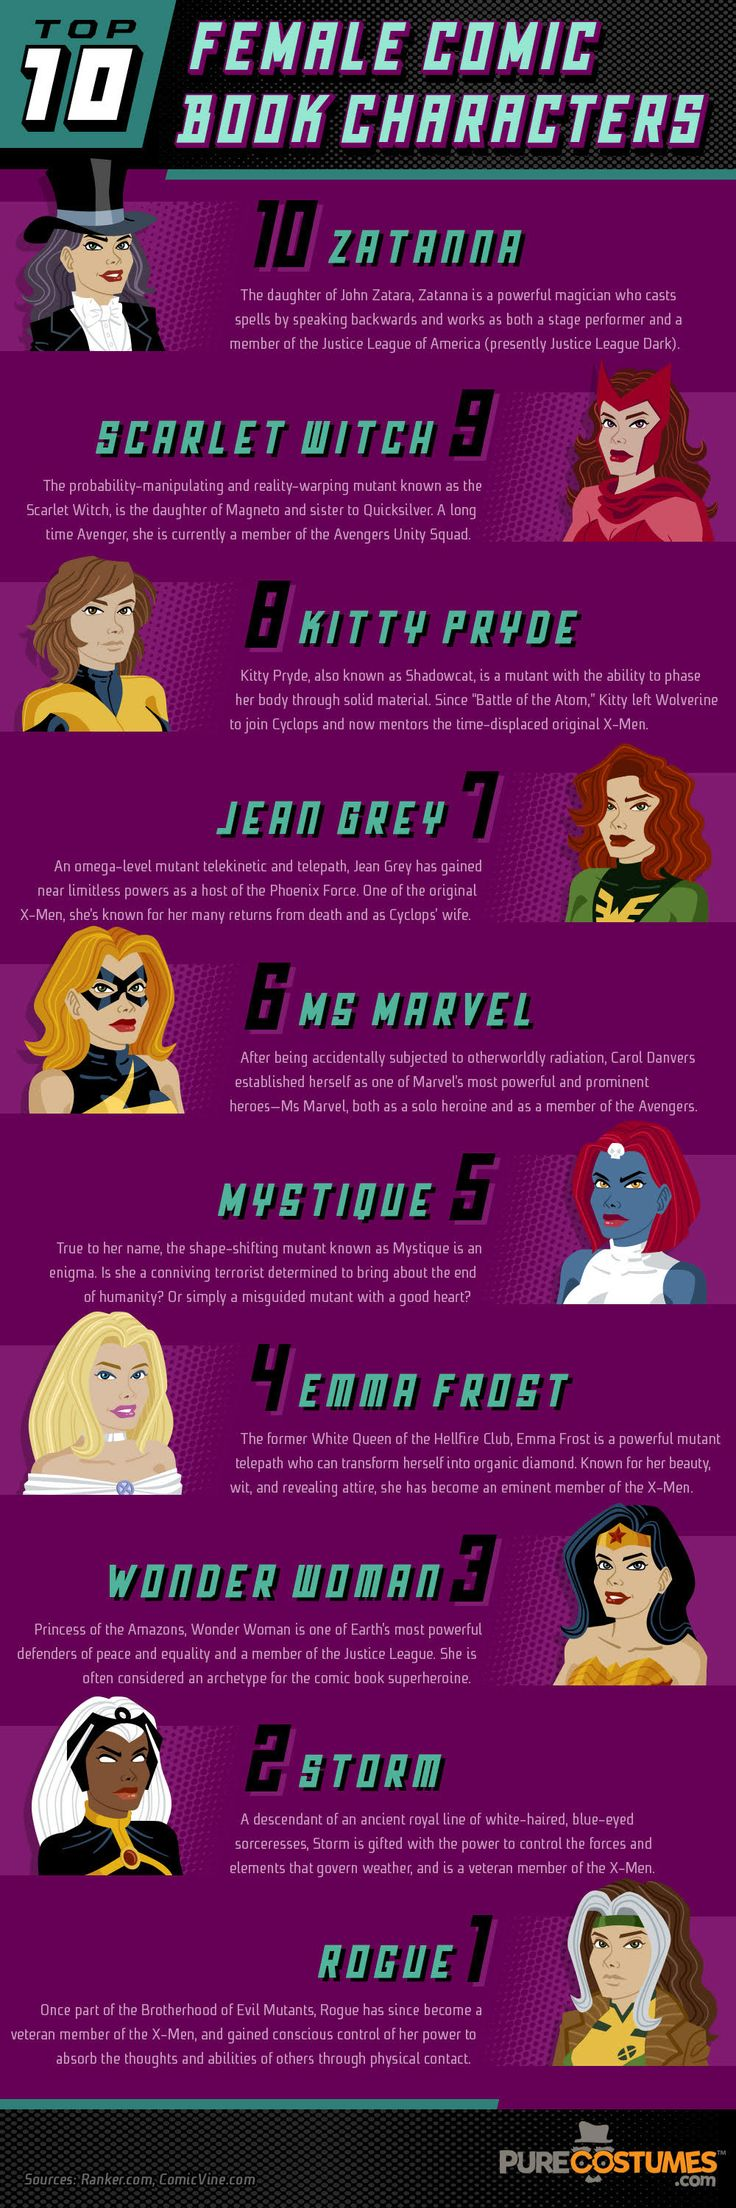 Top 10 Female Superheroes